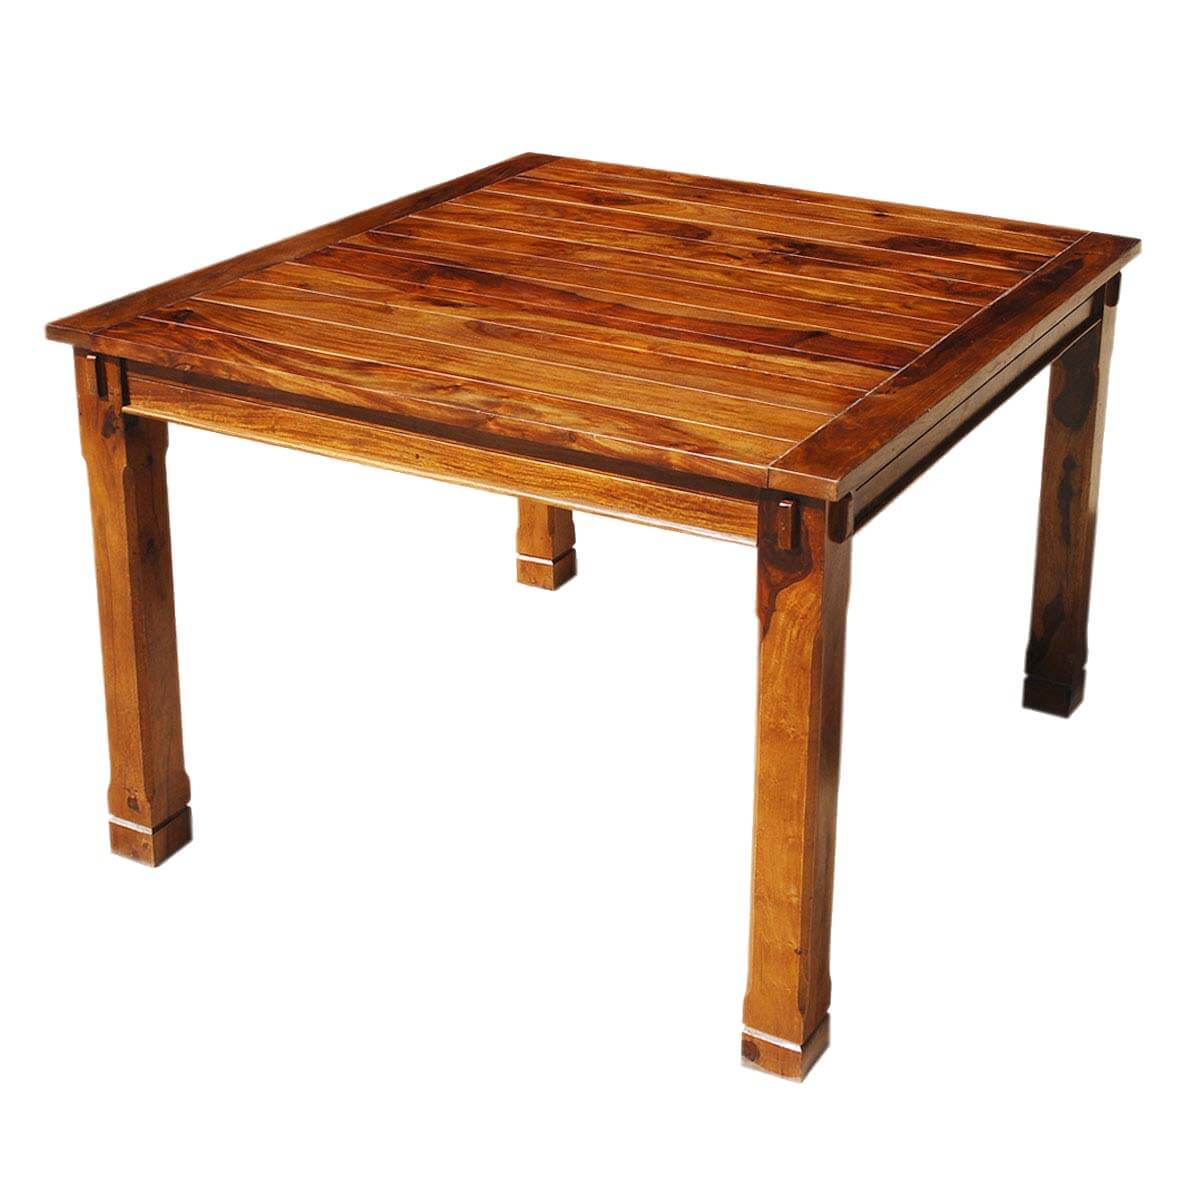 Rustic solid wood square counter height dining table for Tall dining table